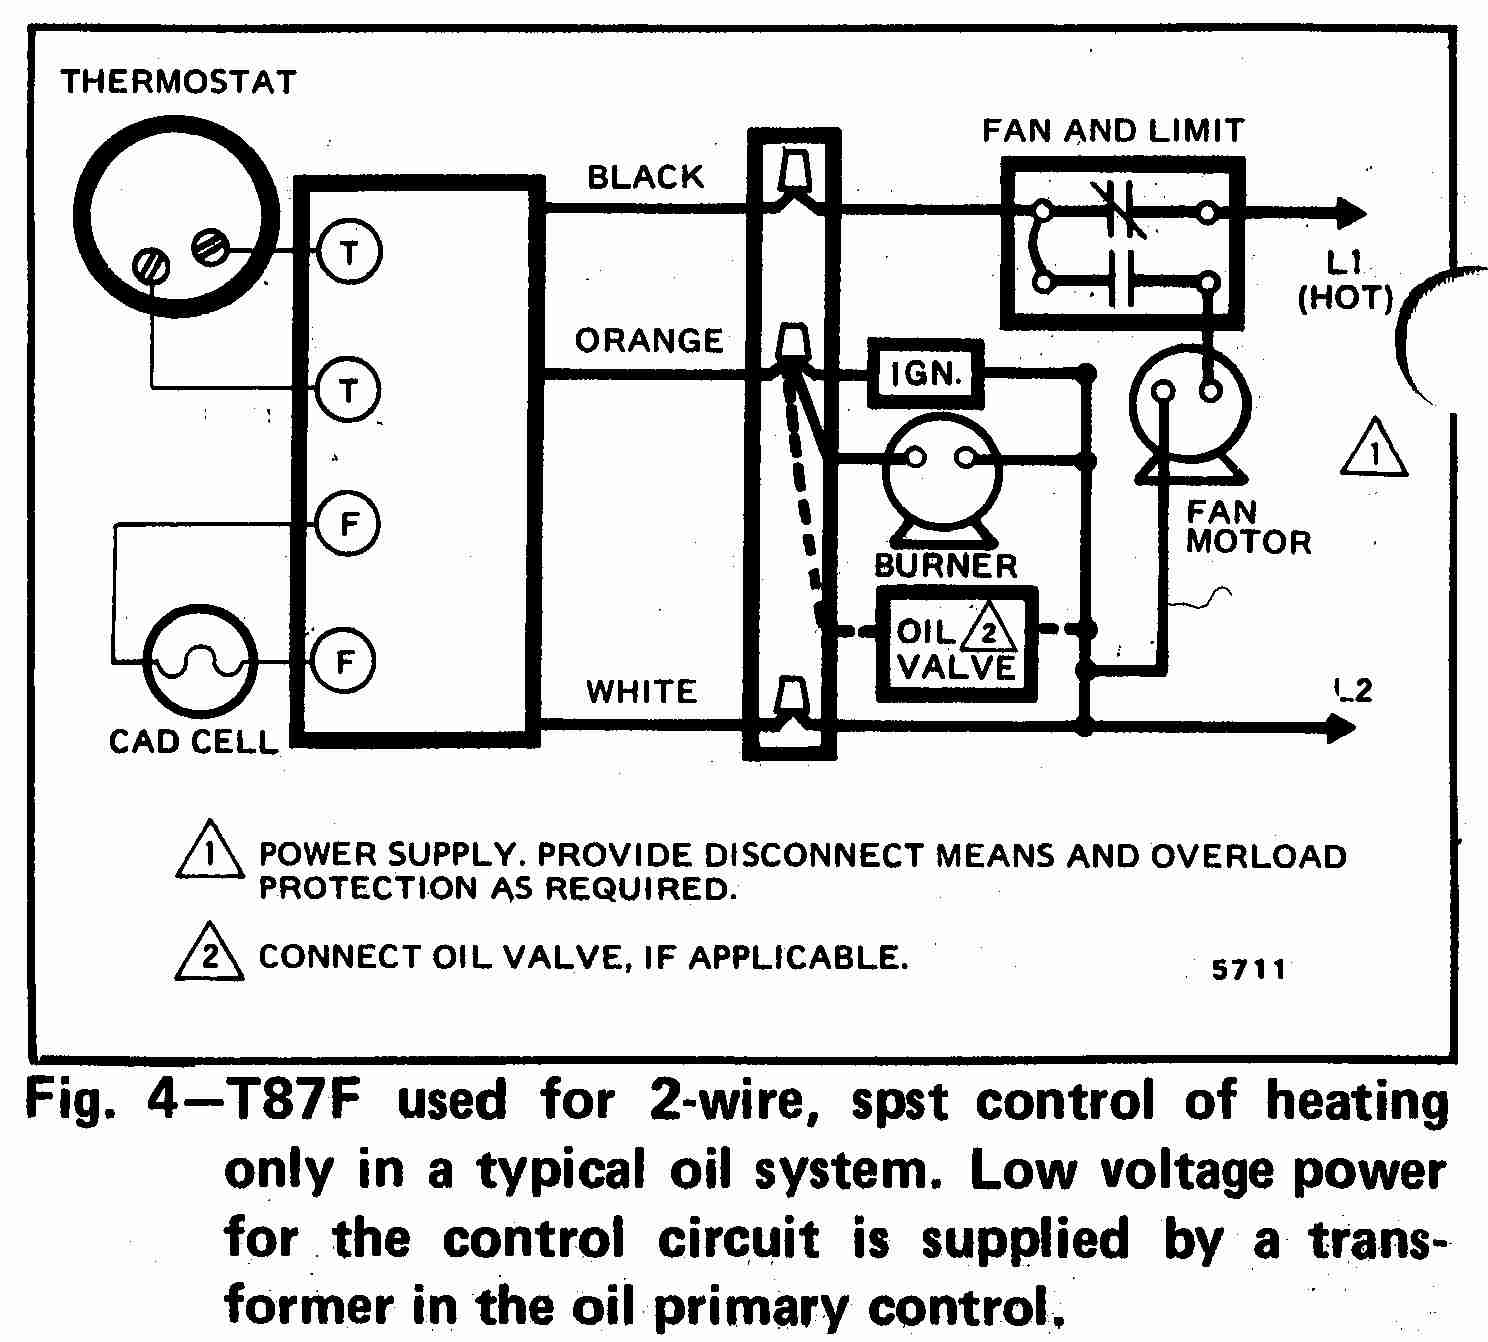 TT_T87F_0002_2W_DJF room thermostat wiring diagrams for hvac systems honeywell thermostat wiring diagram at crackthecode.co